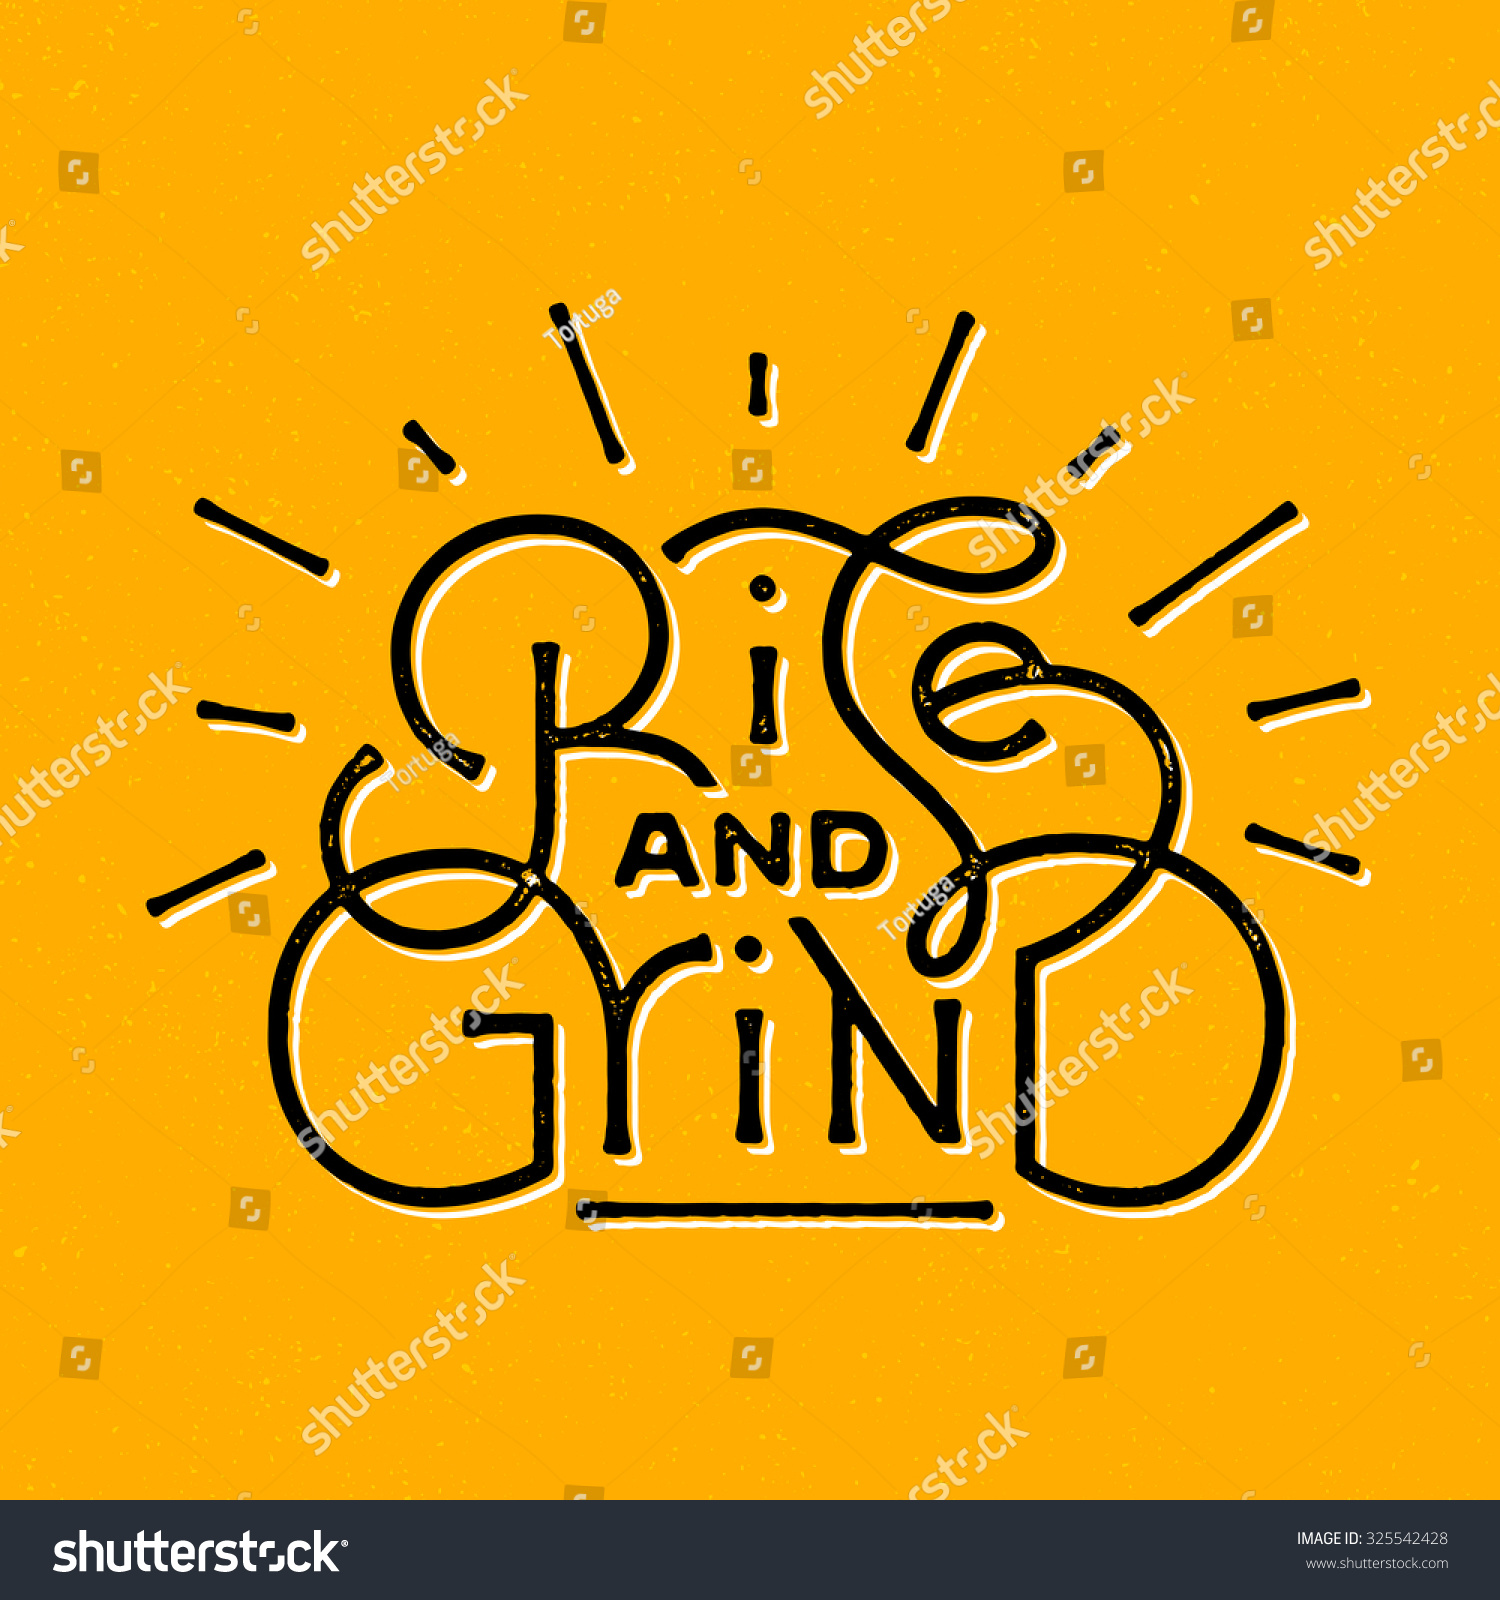 Rise Grind Motivational Textured Vintage Hand Stock Vector (Royalty ...